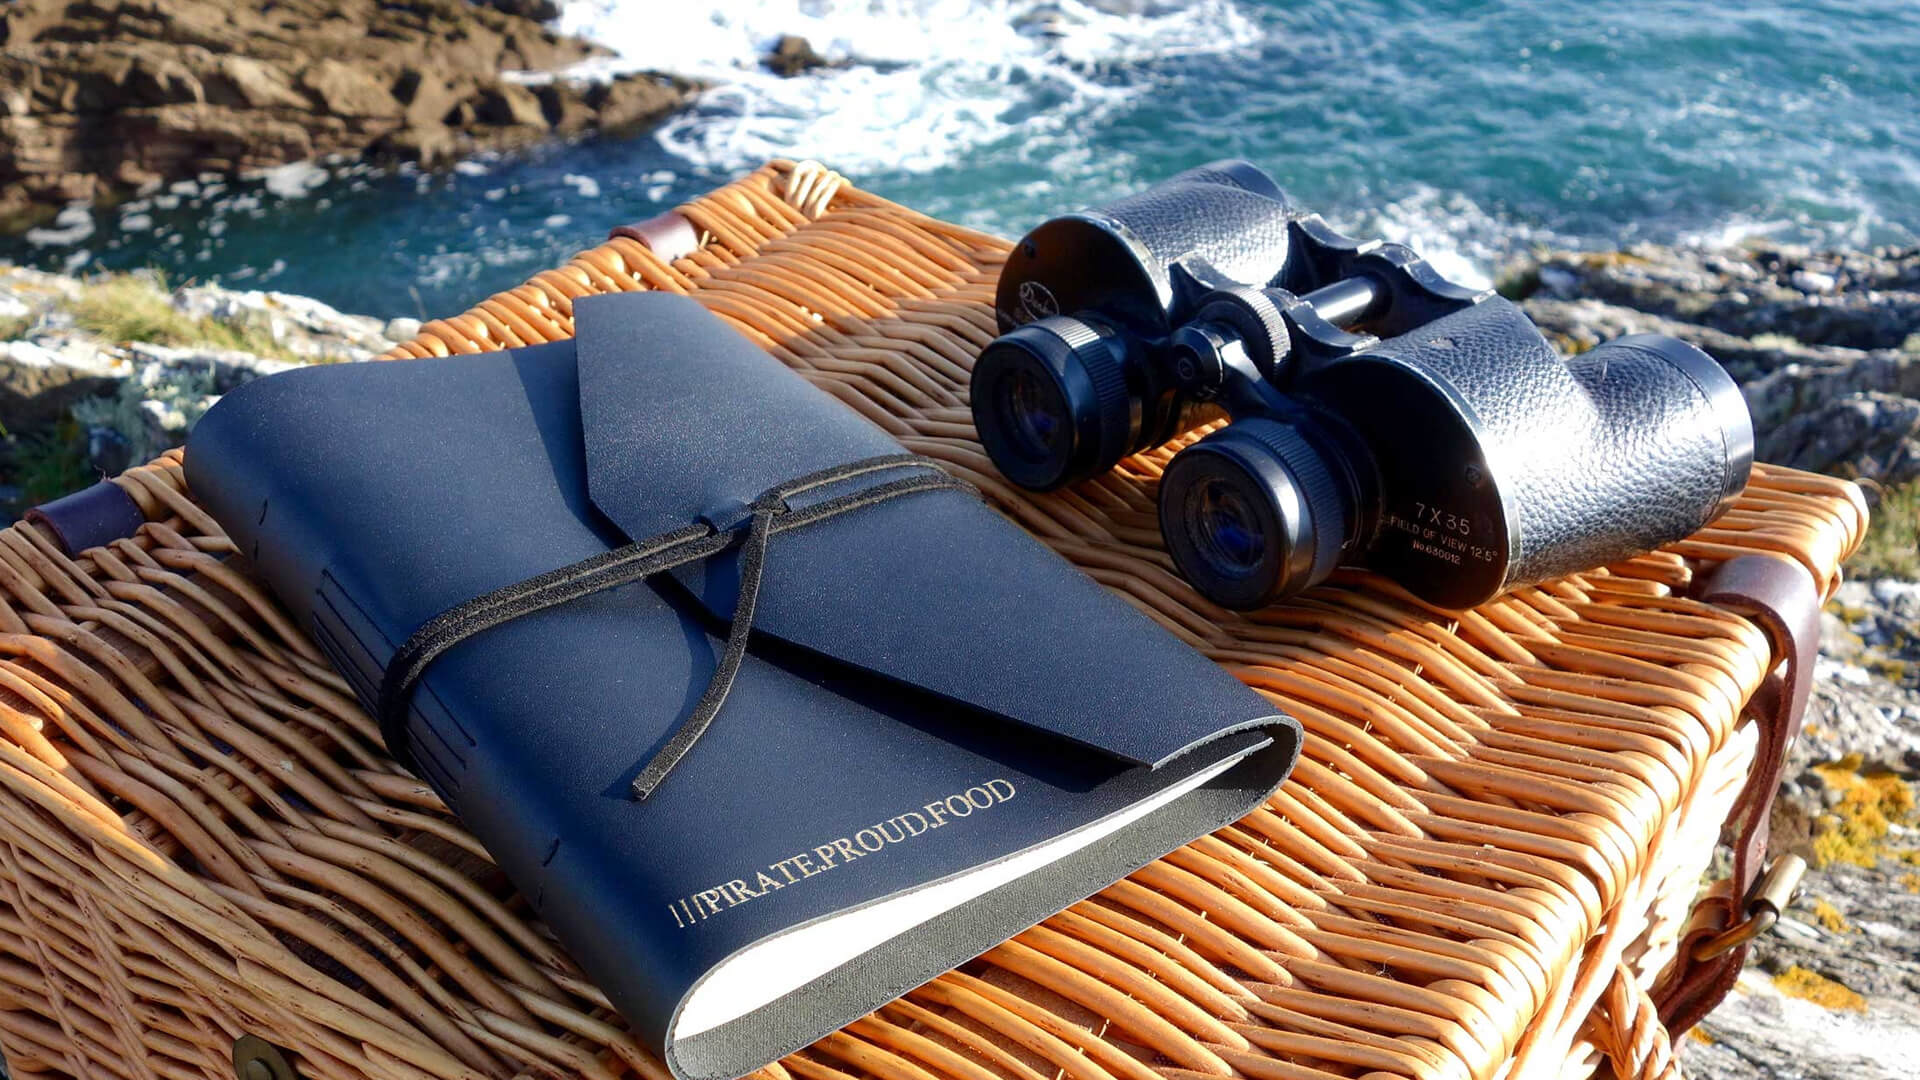 Binoculars and travel diary on top of basket with the sea in background